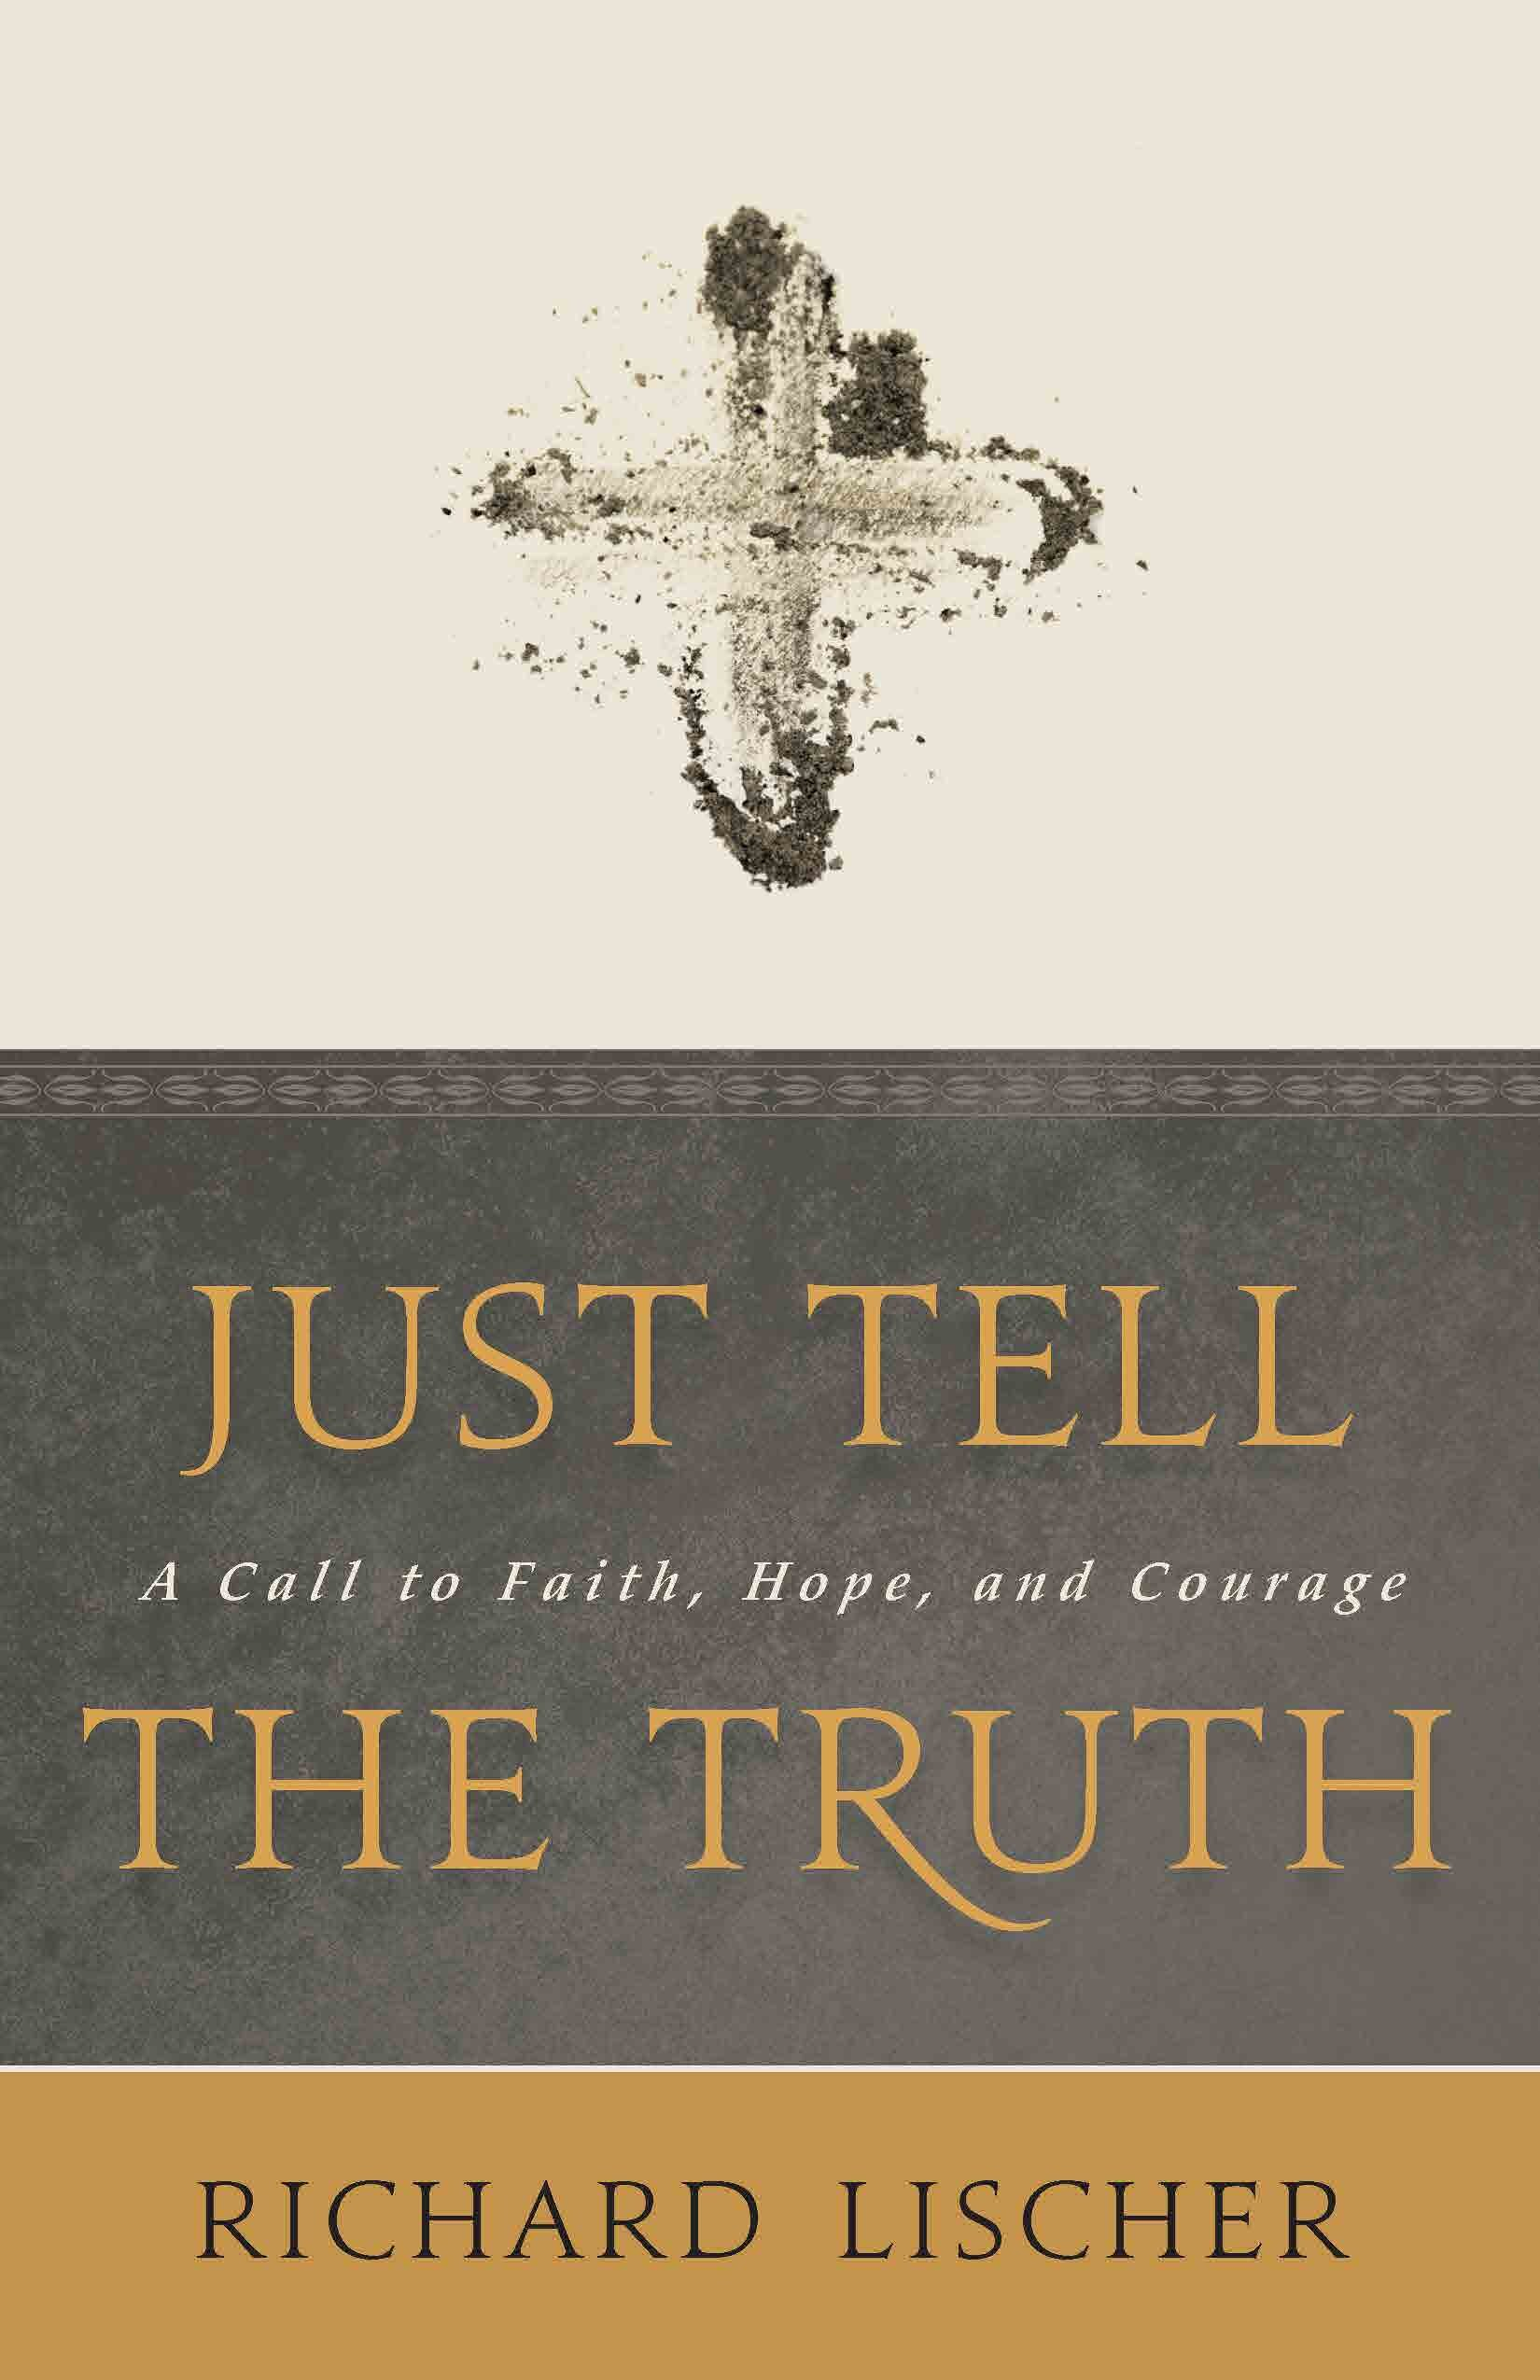 Just Tell the Truth: A Call to Faith, Hope, and Courage